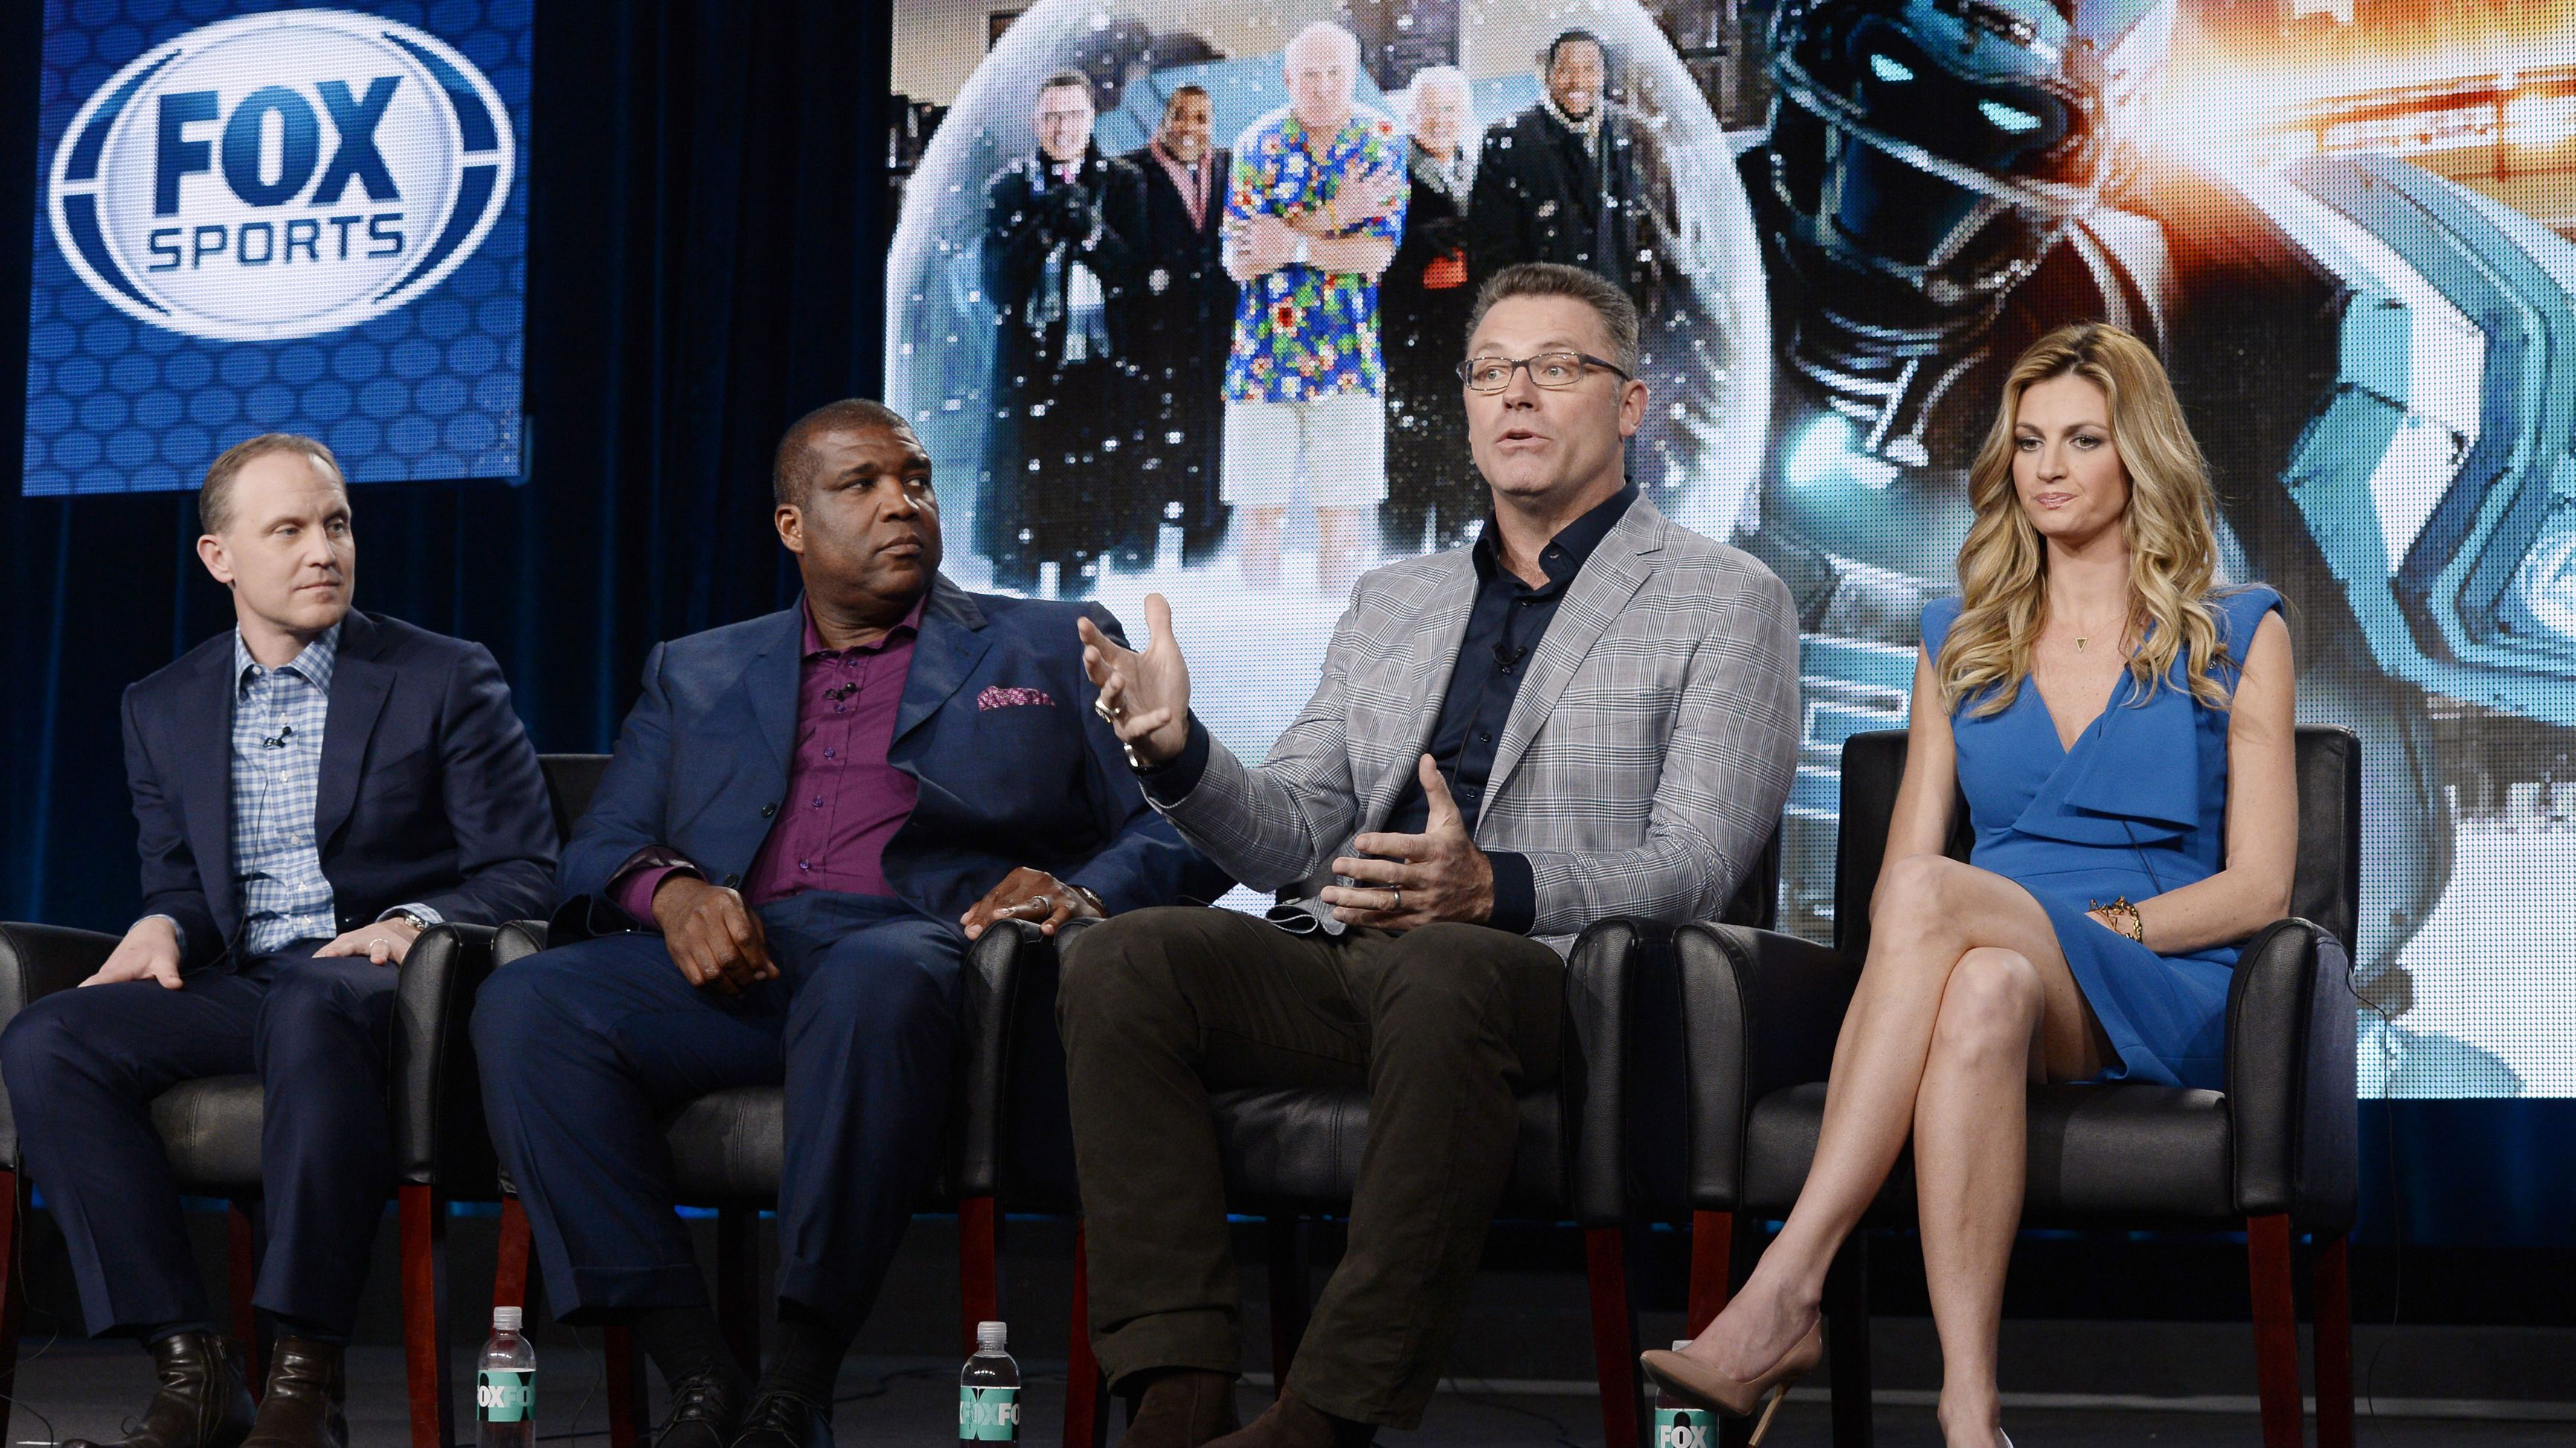 Executive producer Eric Shanks (L-R), host Curt Menefee, analyst Howie Long, and pre-game and game reporter Erin Andrews talk about the FOX Sports television coverage of the Superbowl XLVIII during Fox Broadcasting Company's part of the Television Critics Association (TCA) Winter 2014 presentations in Pasadena, California, January 13, 2014.